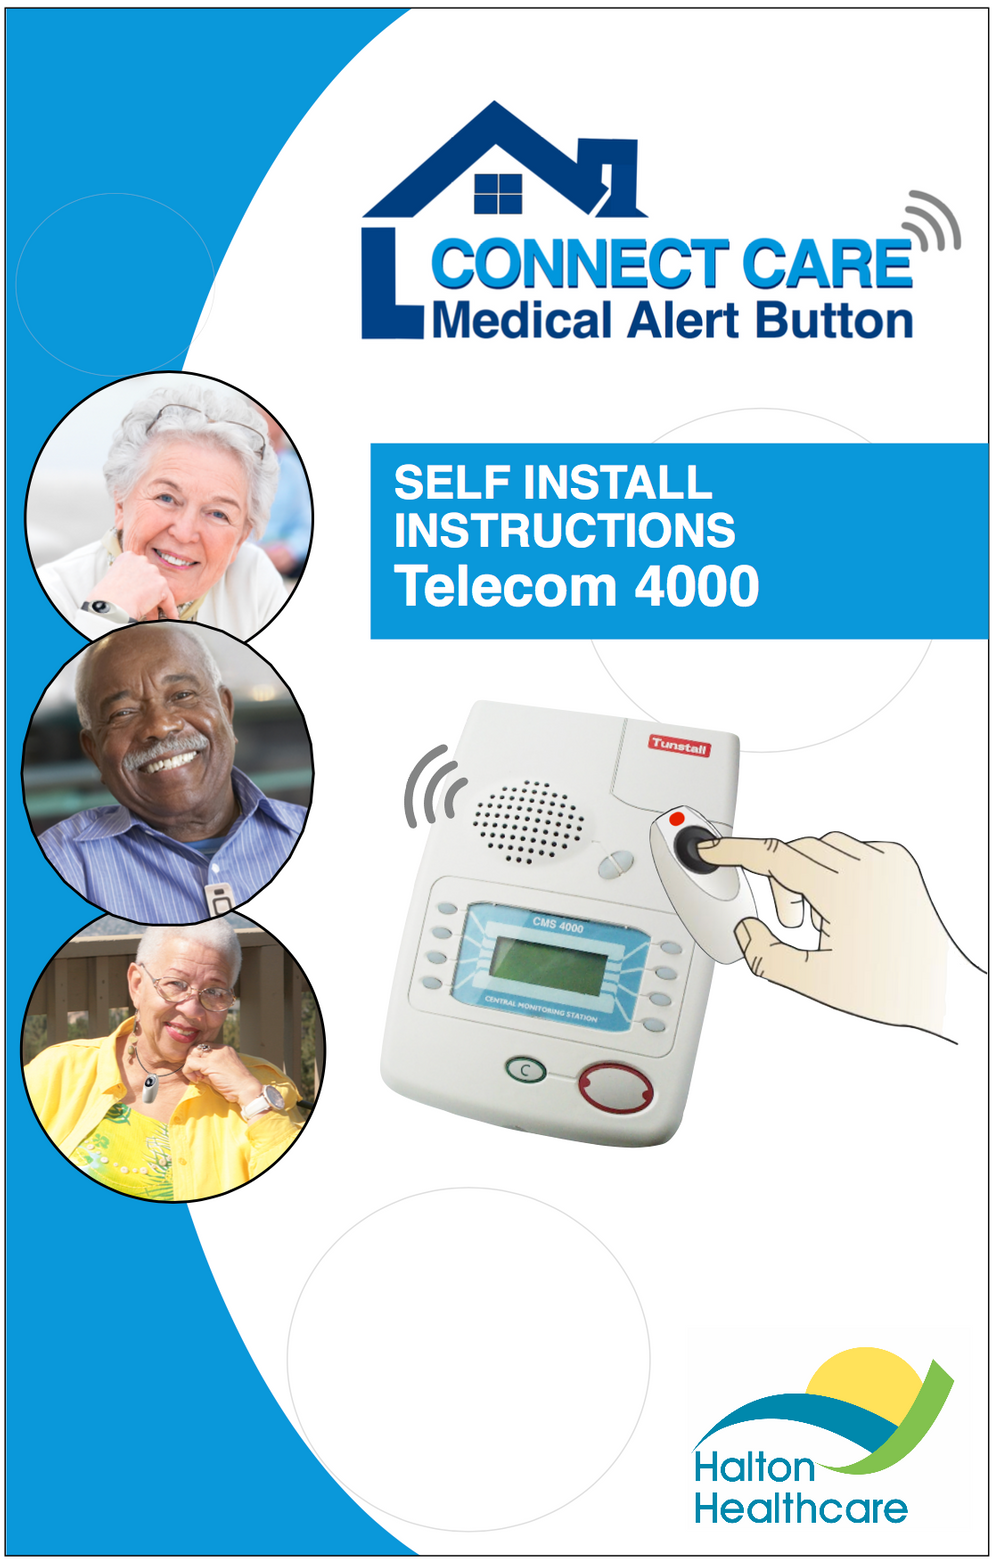 Images of seniors wearing the personal help button on the cover of the Telecom 4000 Self Install Instructions Guide.